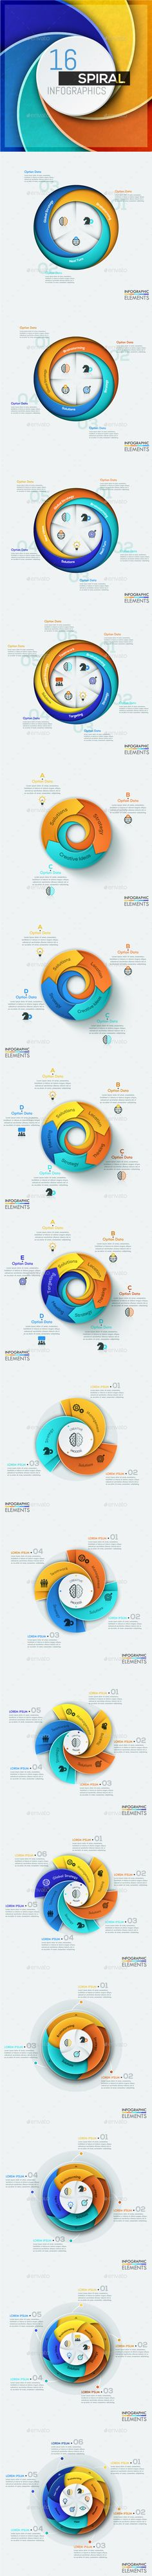 16 Spiral Infographic Templates — PSD Template #business #layout • Download ➝ https://graphicriver.net/item/16-spiral-infographic-templates/18651927?ref=pxcr